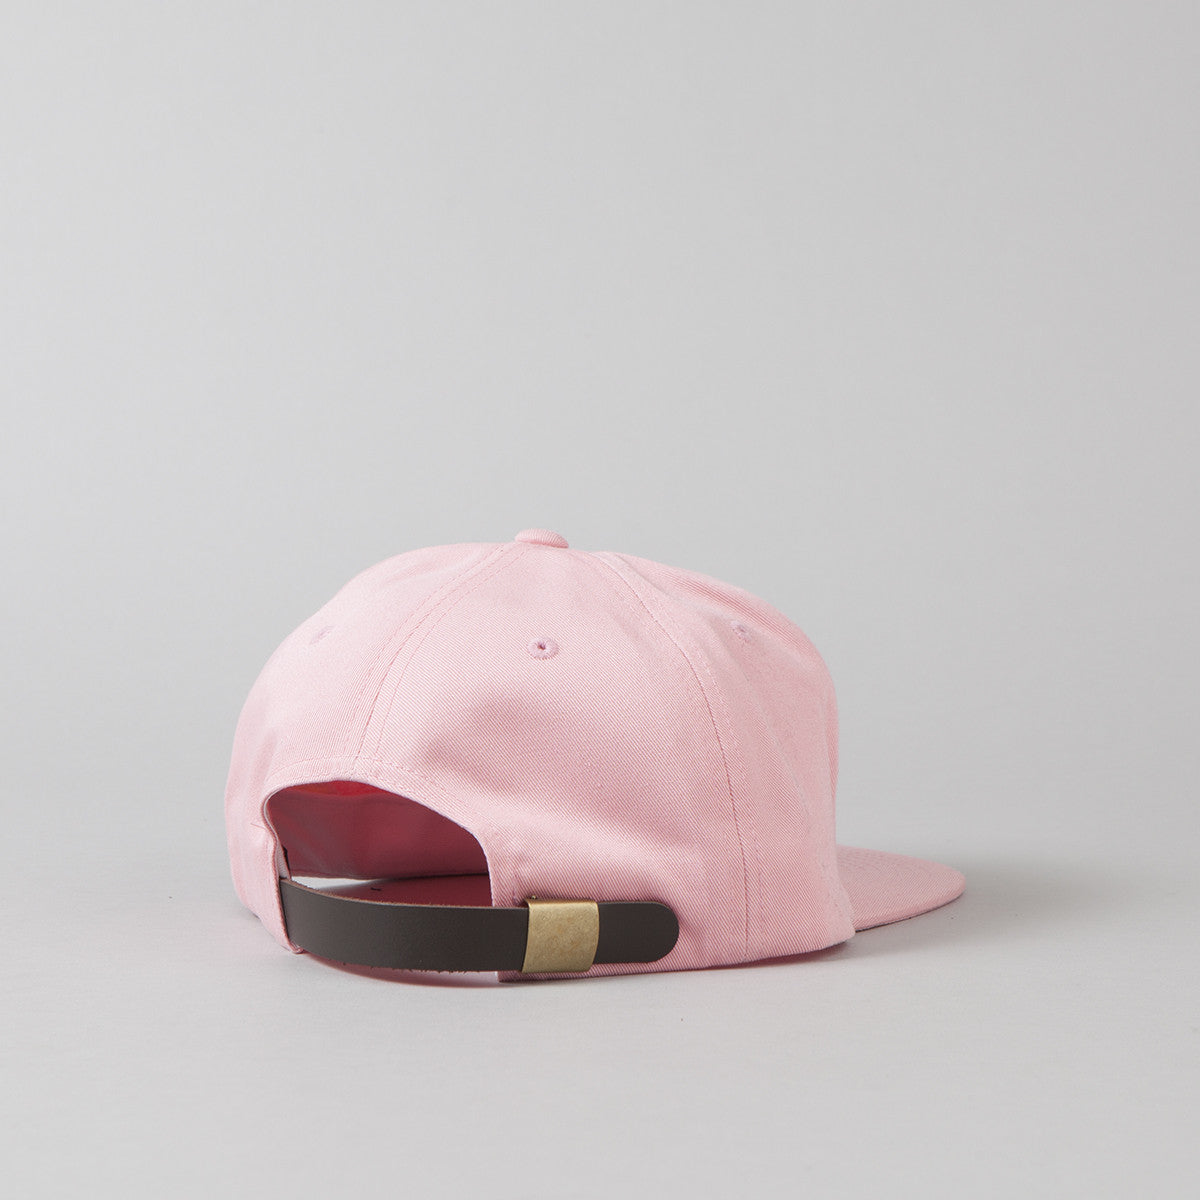 Stussy Classic S Strapback Cap - Pink